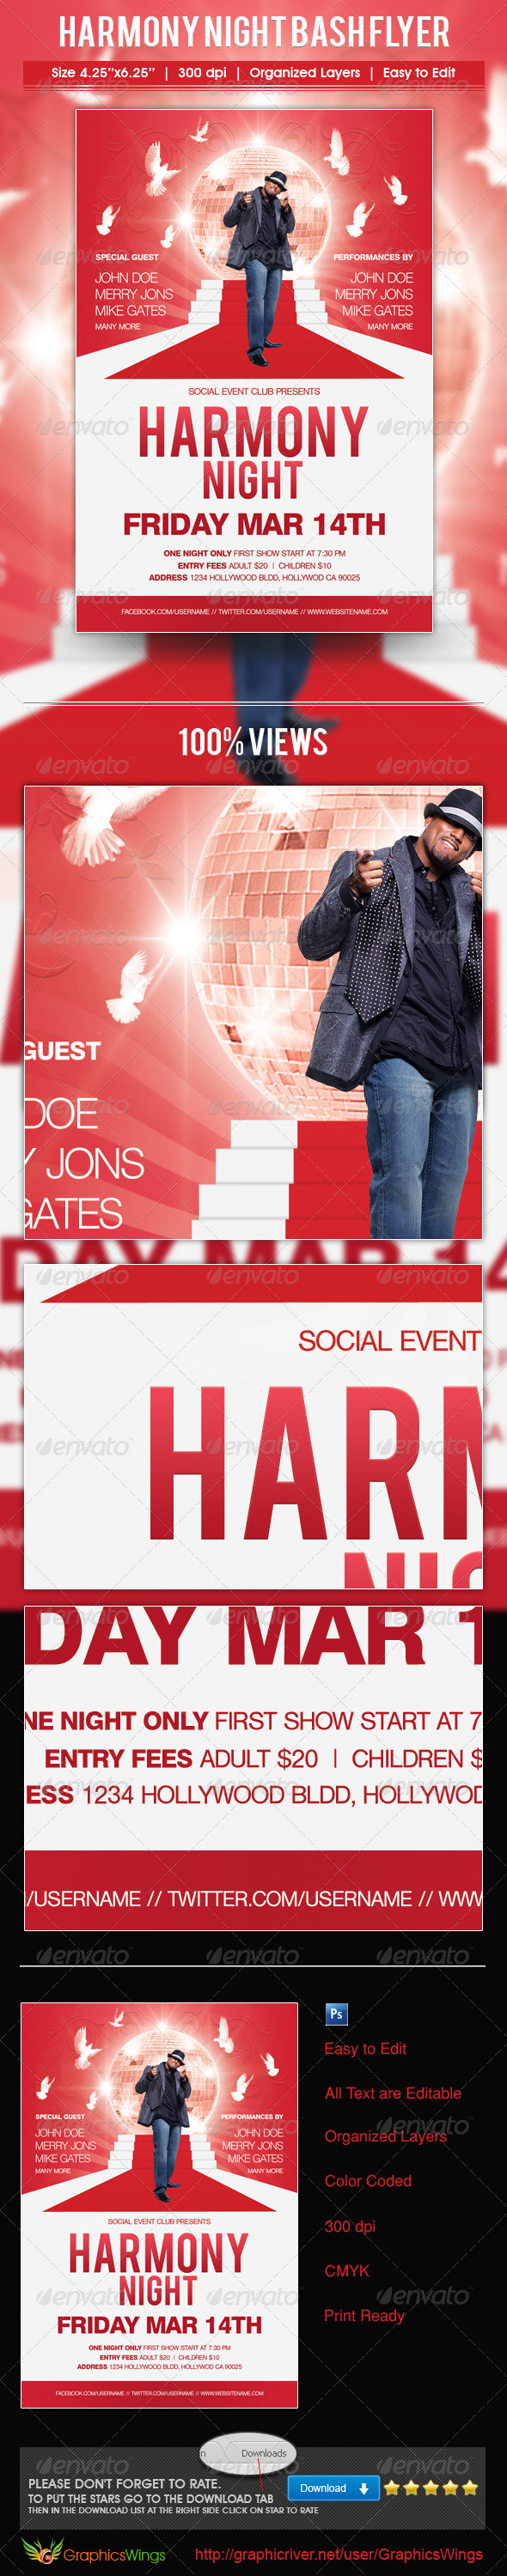 Harmony Night Bash Flyer Template - Concerts Events